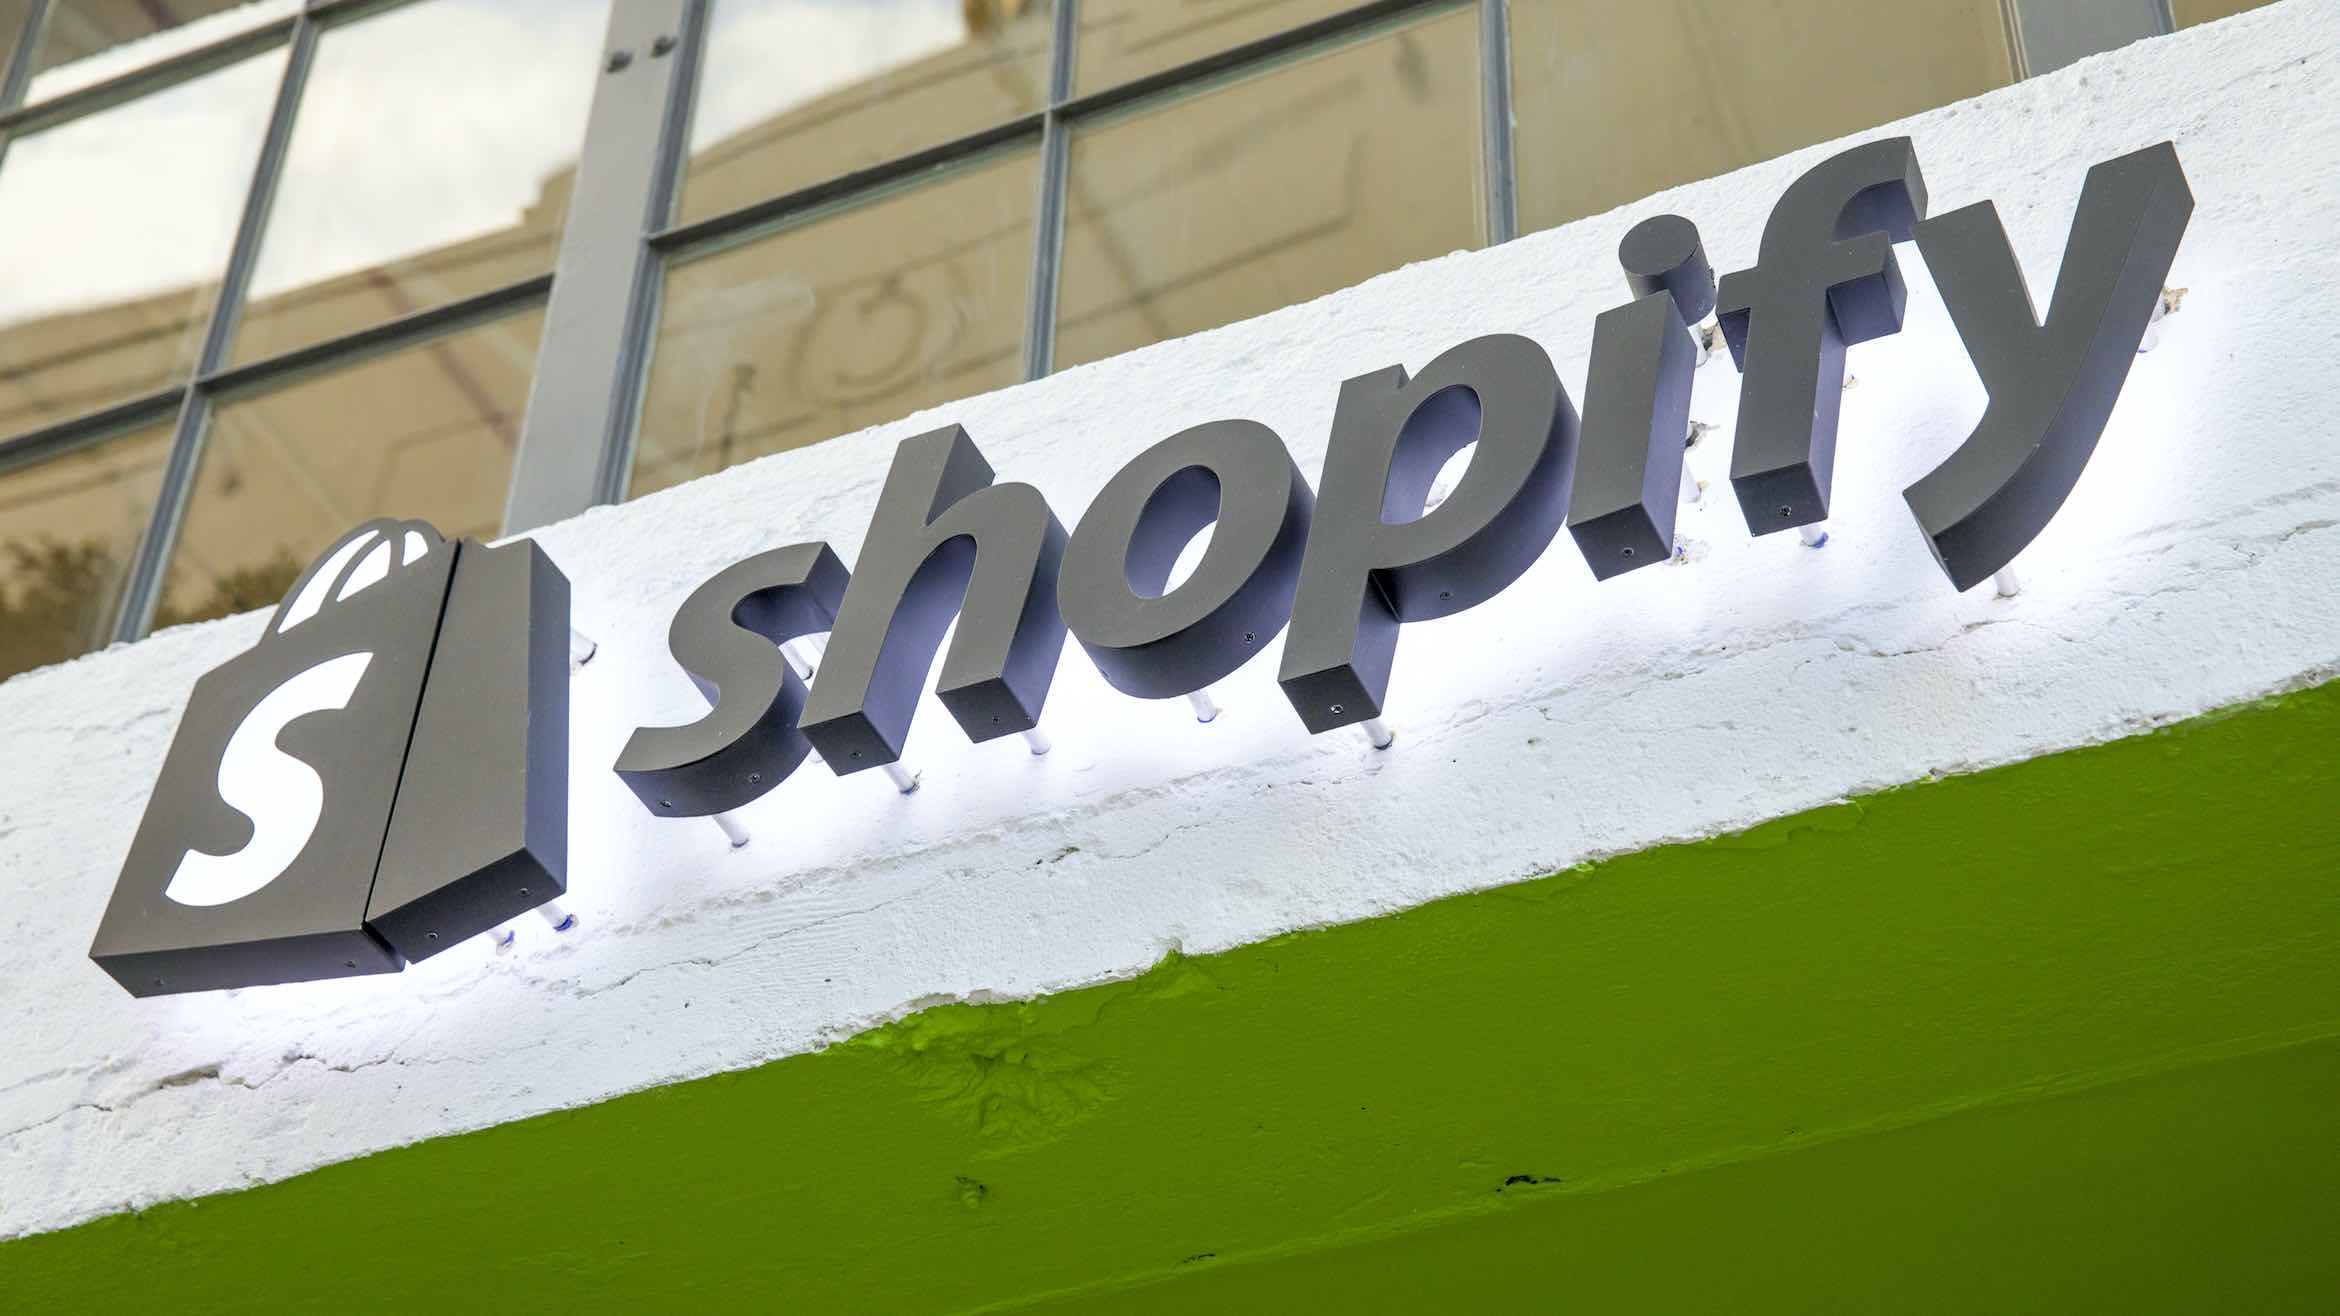 Shopify launcht Enterprise-Lösung in Deutschland